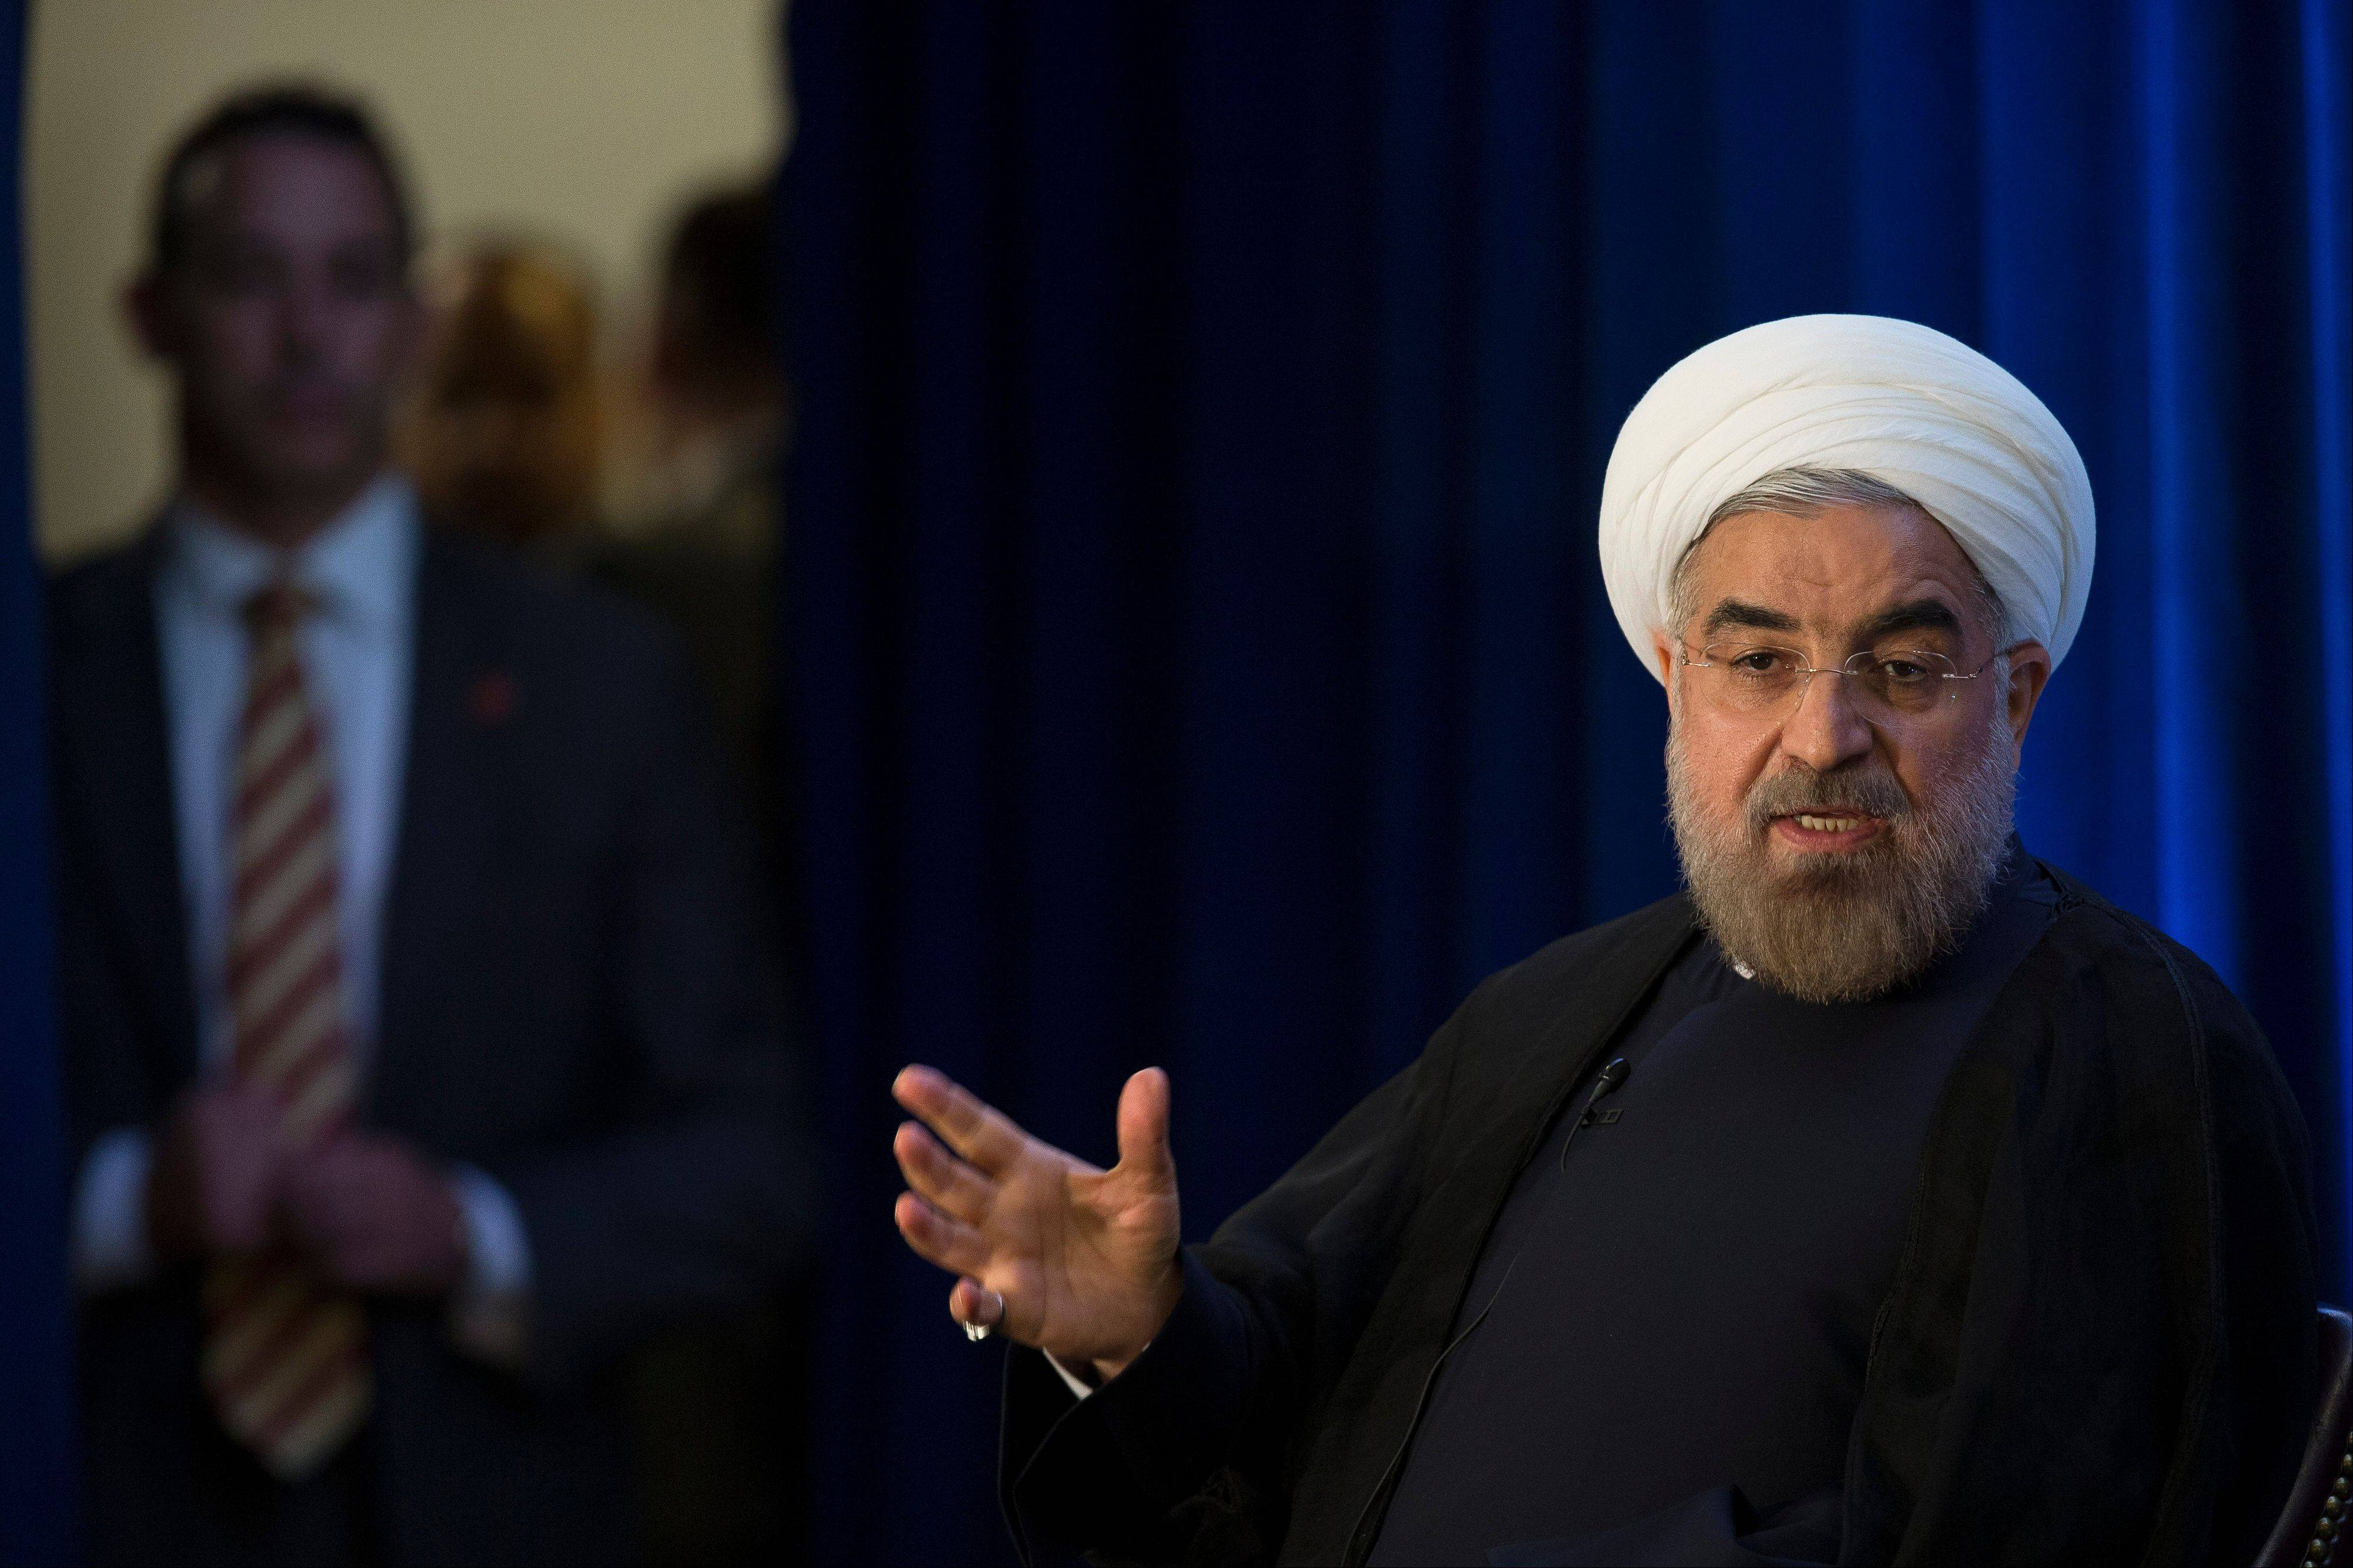 Iranian President Hassan Rouhani listens to a question as security personnel waits in the wings during an address and discussion hosted by the Asia Society and the Council on Foreign Relations at the Hilton Hotel in midtown Manhattan, Thursday, Sept. 26, 2013, in New York.